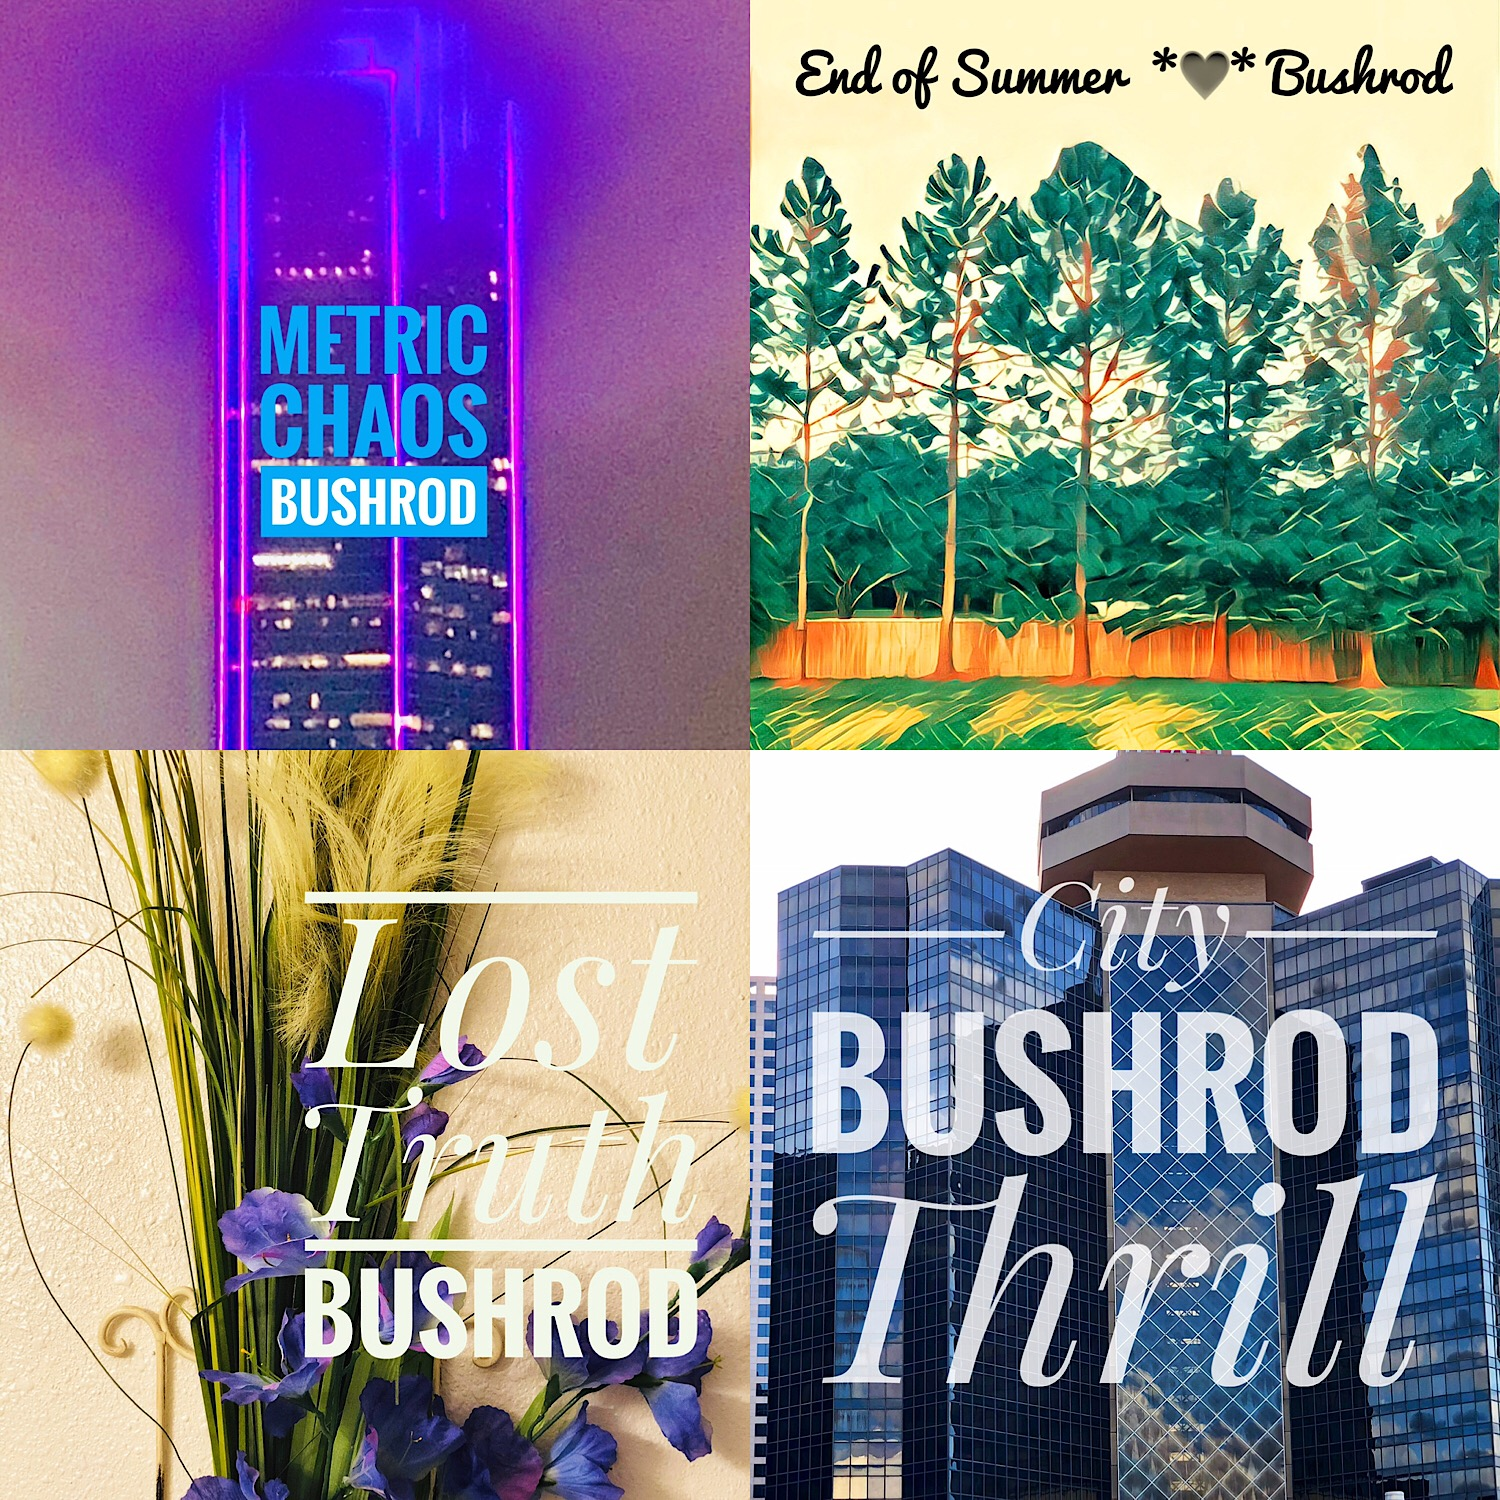 Hear the Latest SoundCloud Posts by Bushrod